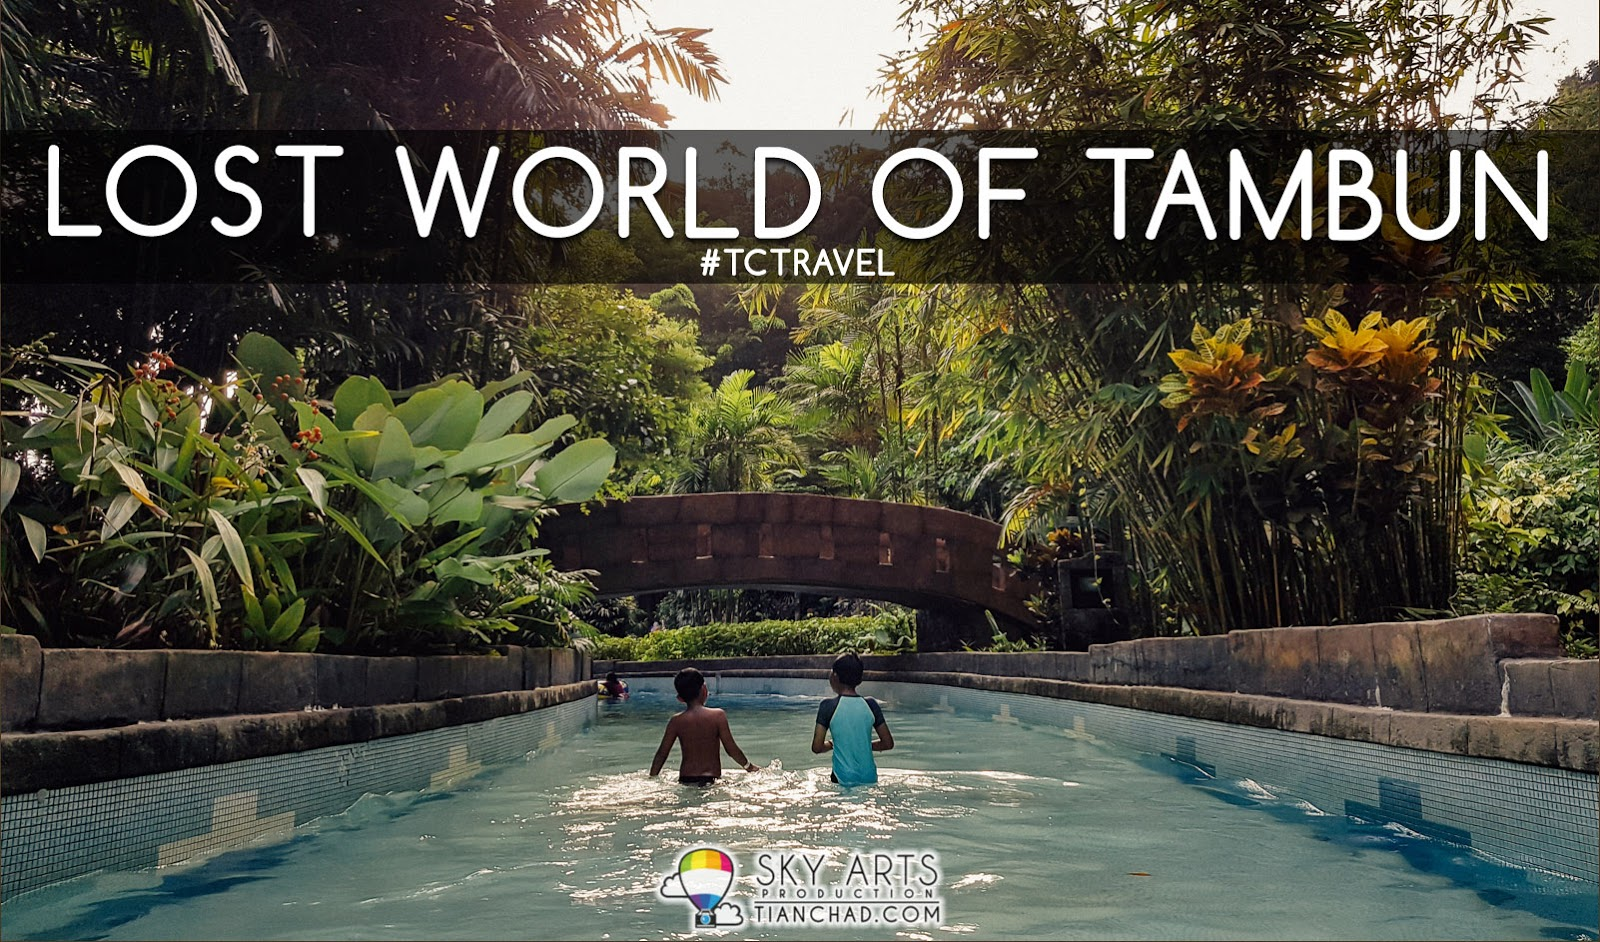 lost world of tambun must try ride tctravel